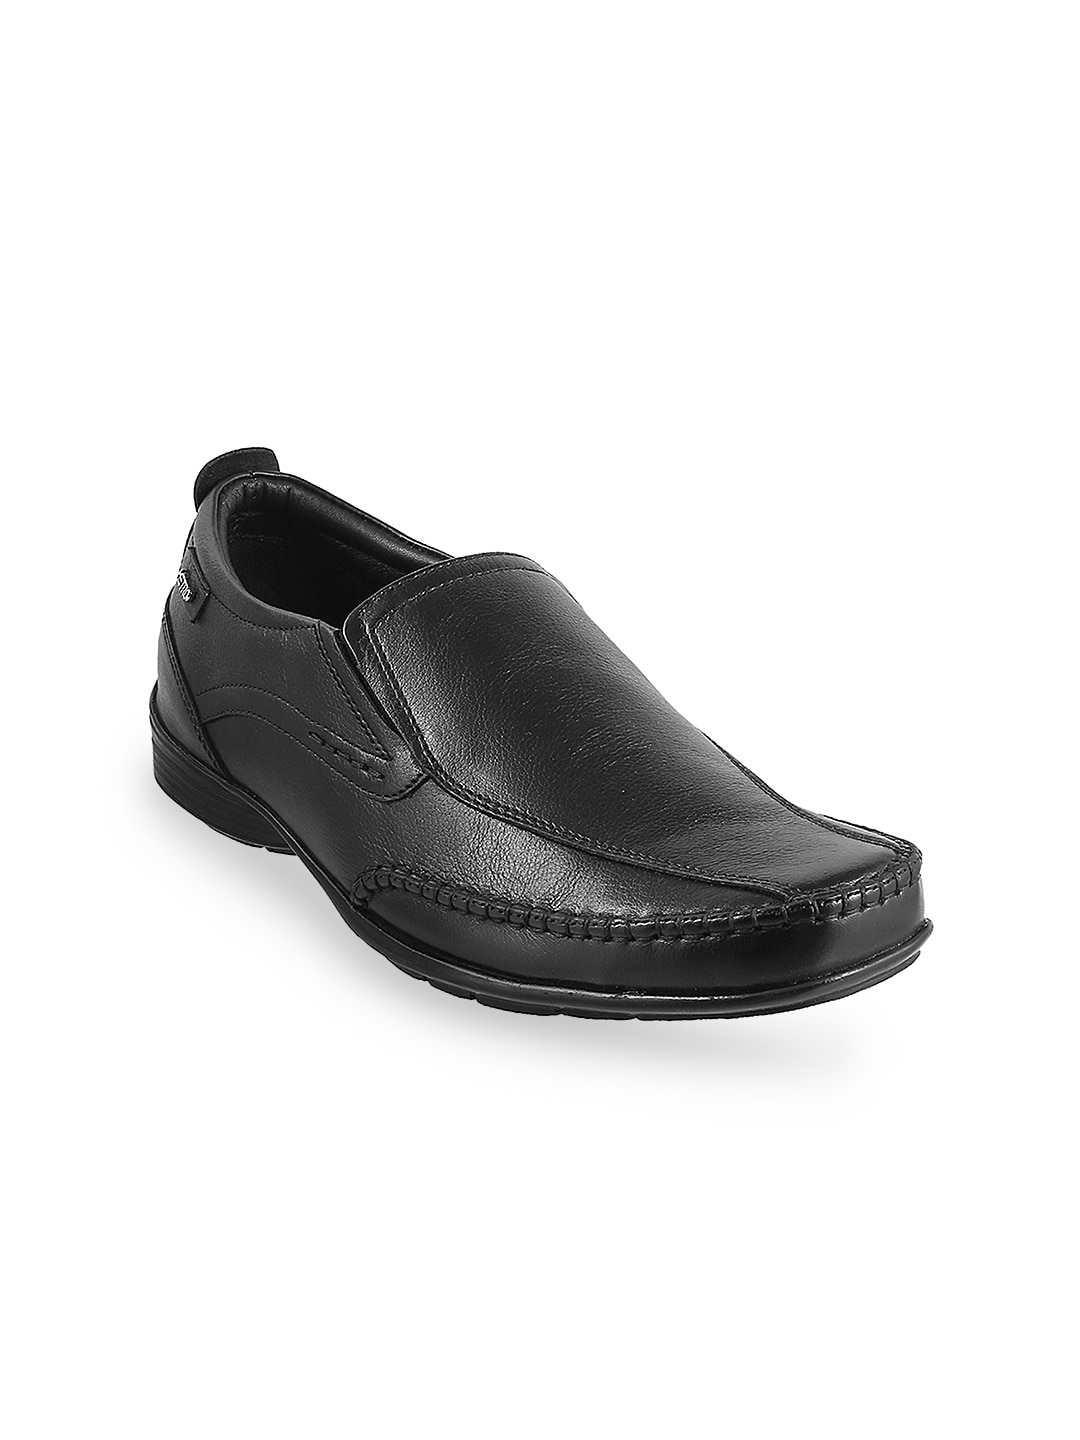 Metro Men Black Leather Semiformal Shoes image